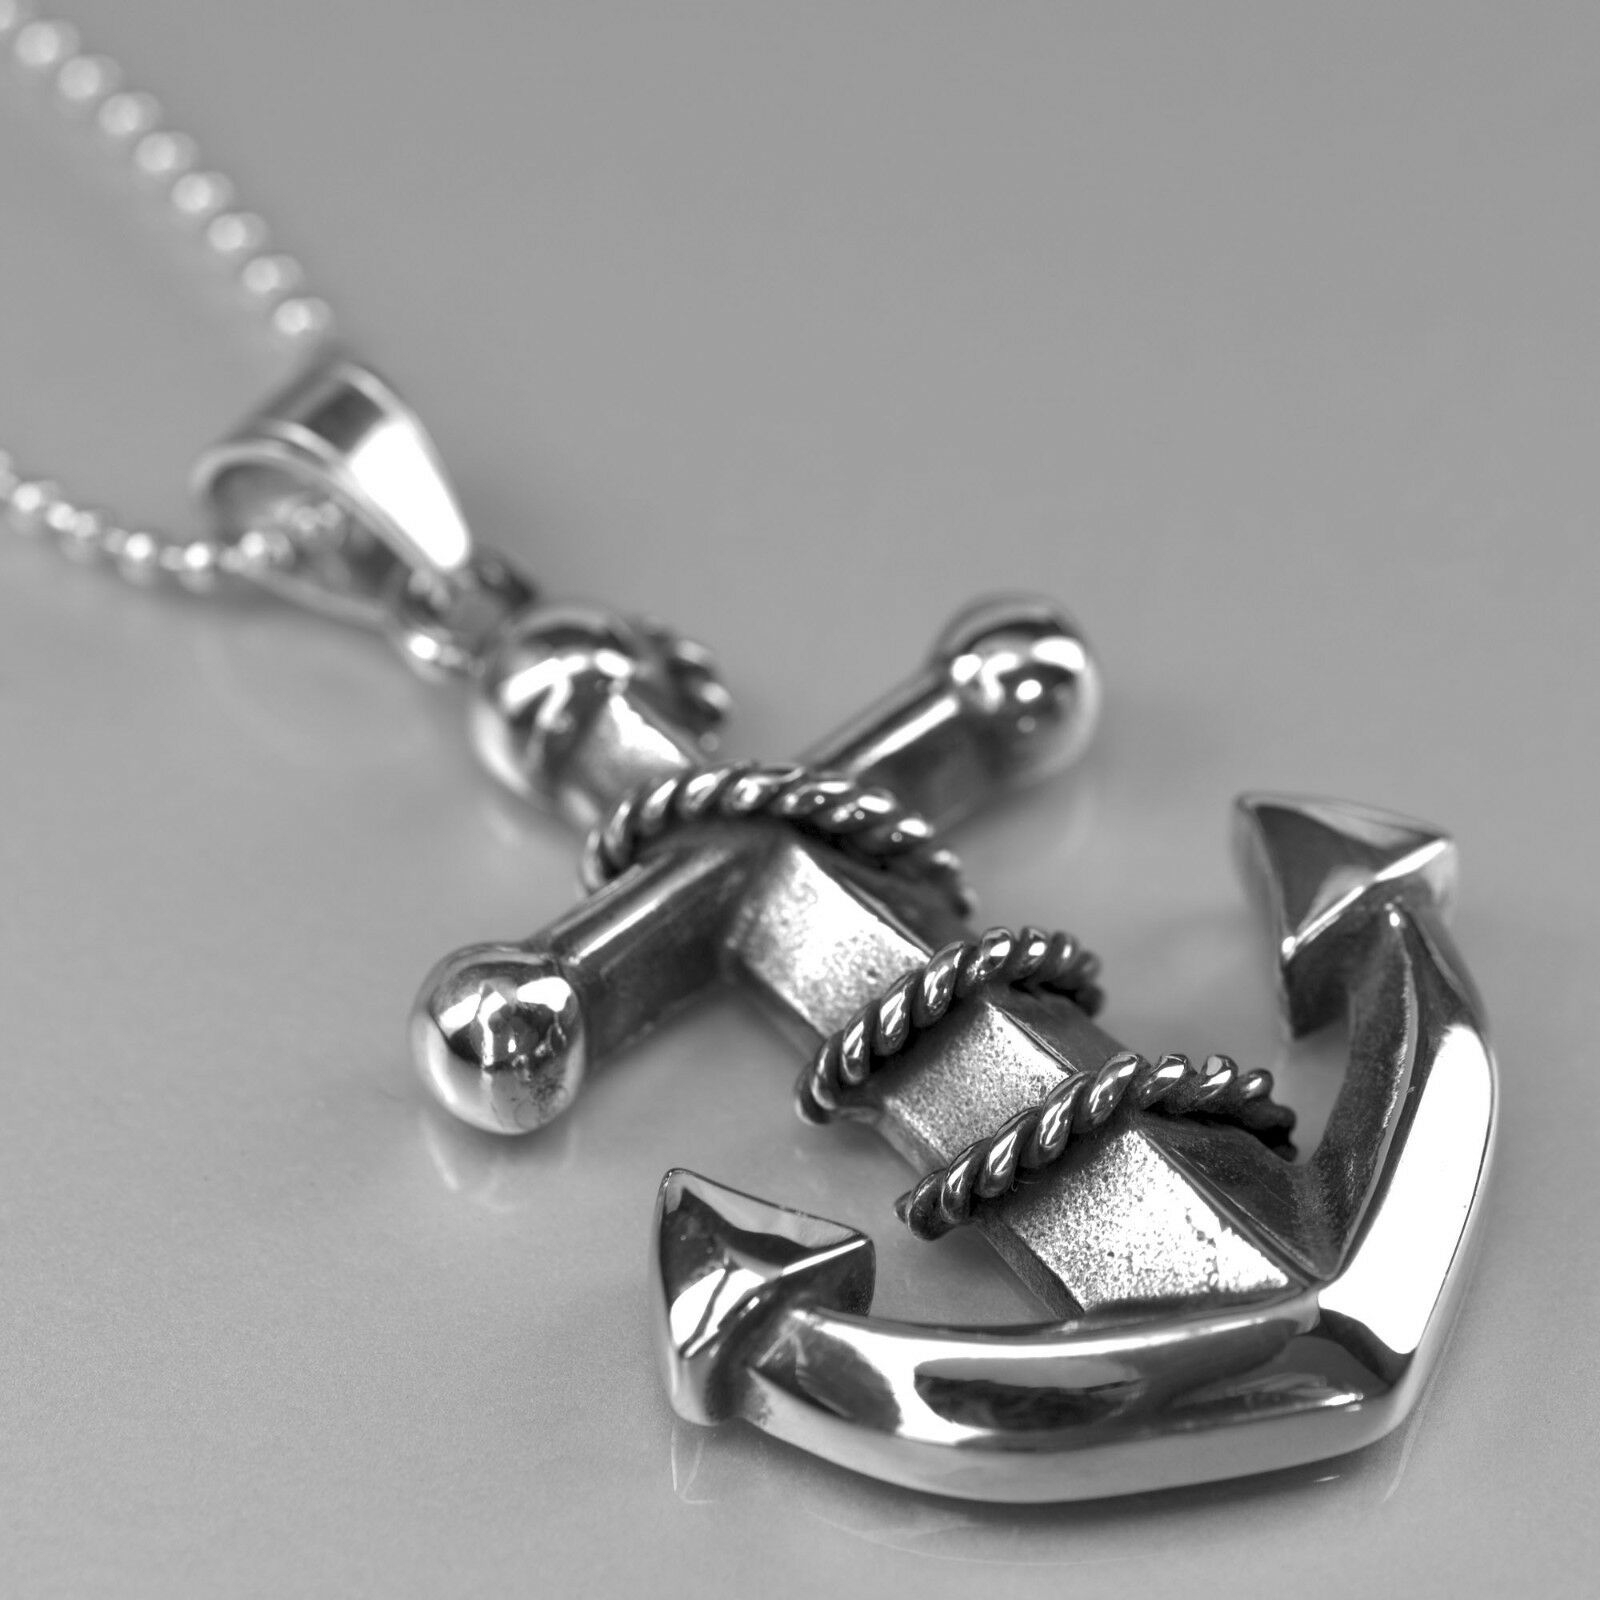 Details About Silver Anchor Pendant Stainless Steel Ball Chain Necklace Classic Design 24 Inch Intended For Most Recently Released Classic Anchor Chain Necklaces (View 2 of 25)